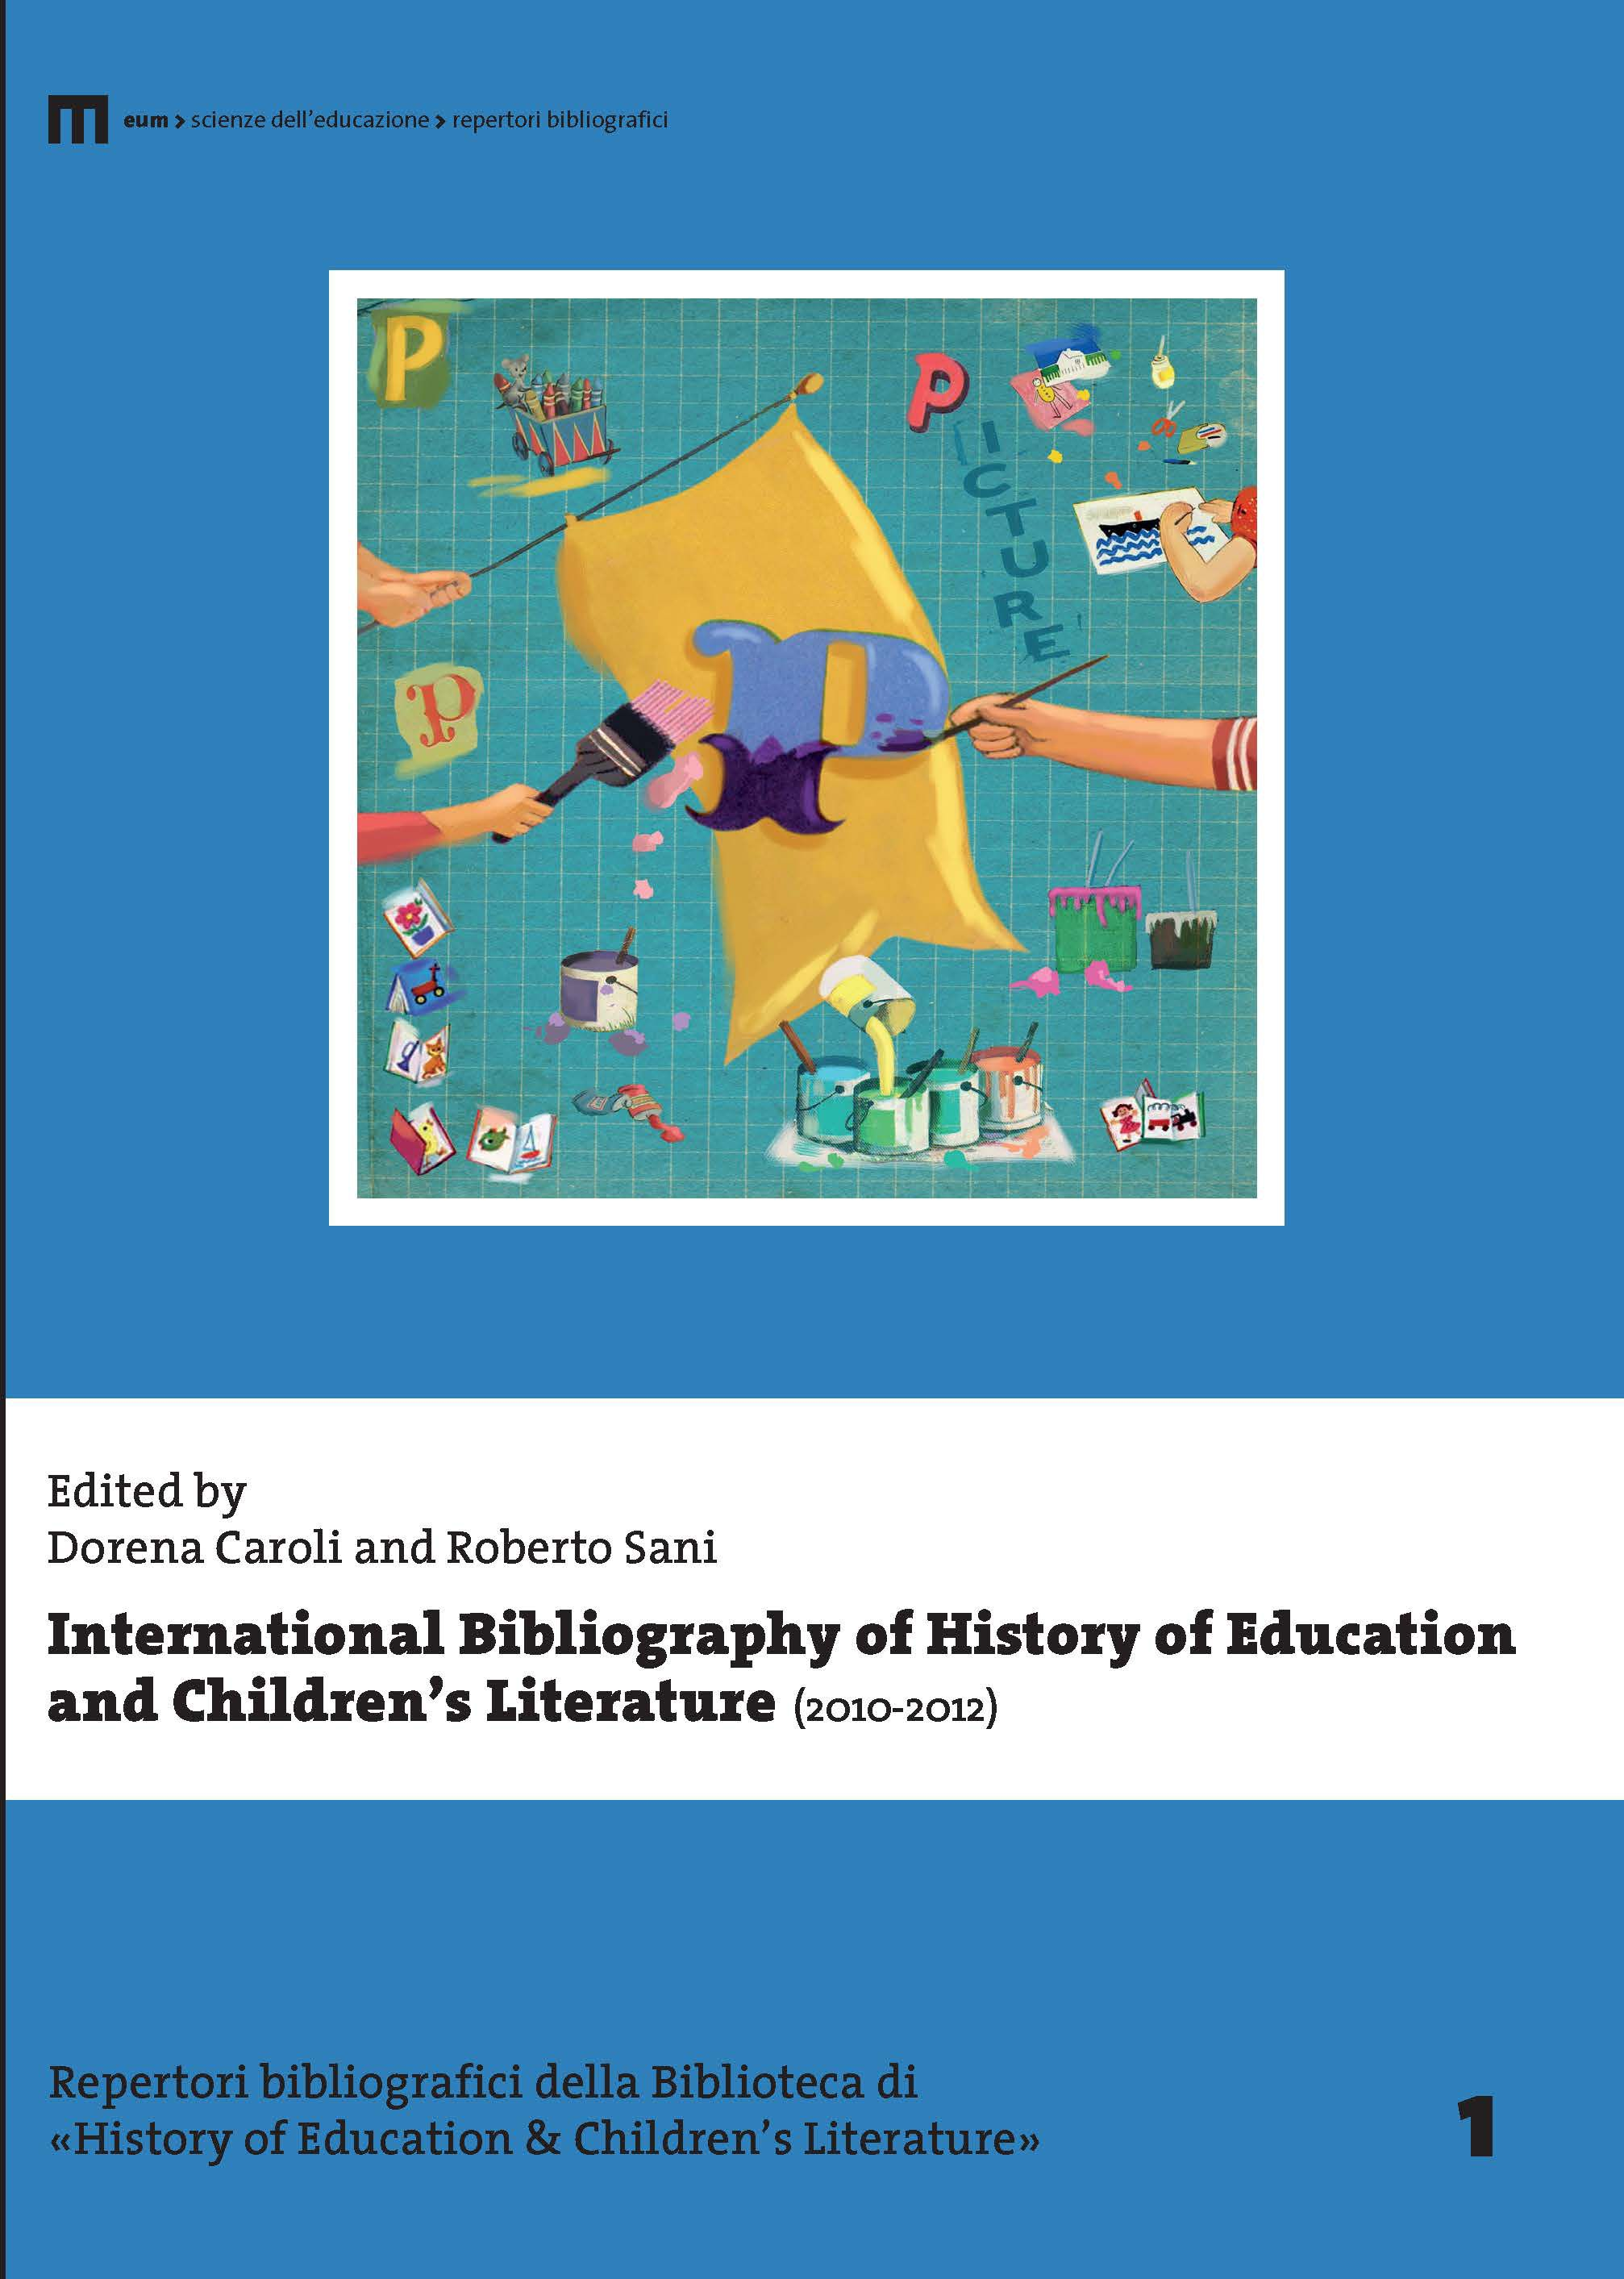 International Bibliography of History of Education and Children's Literature (2010-2012)